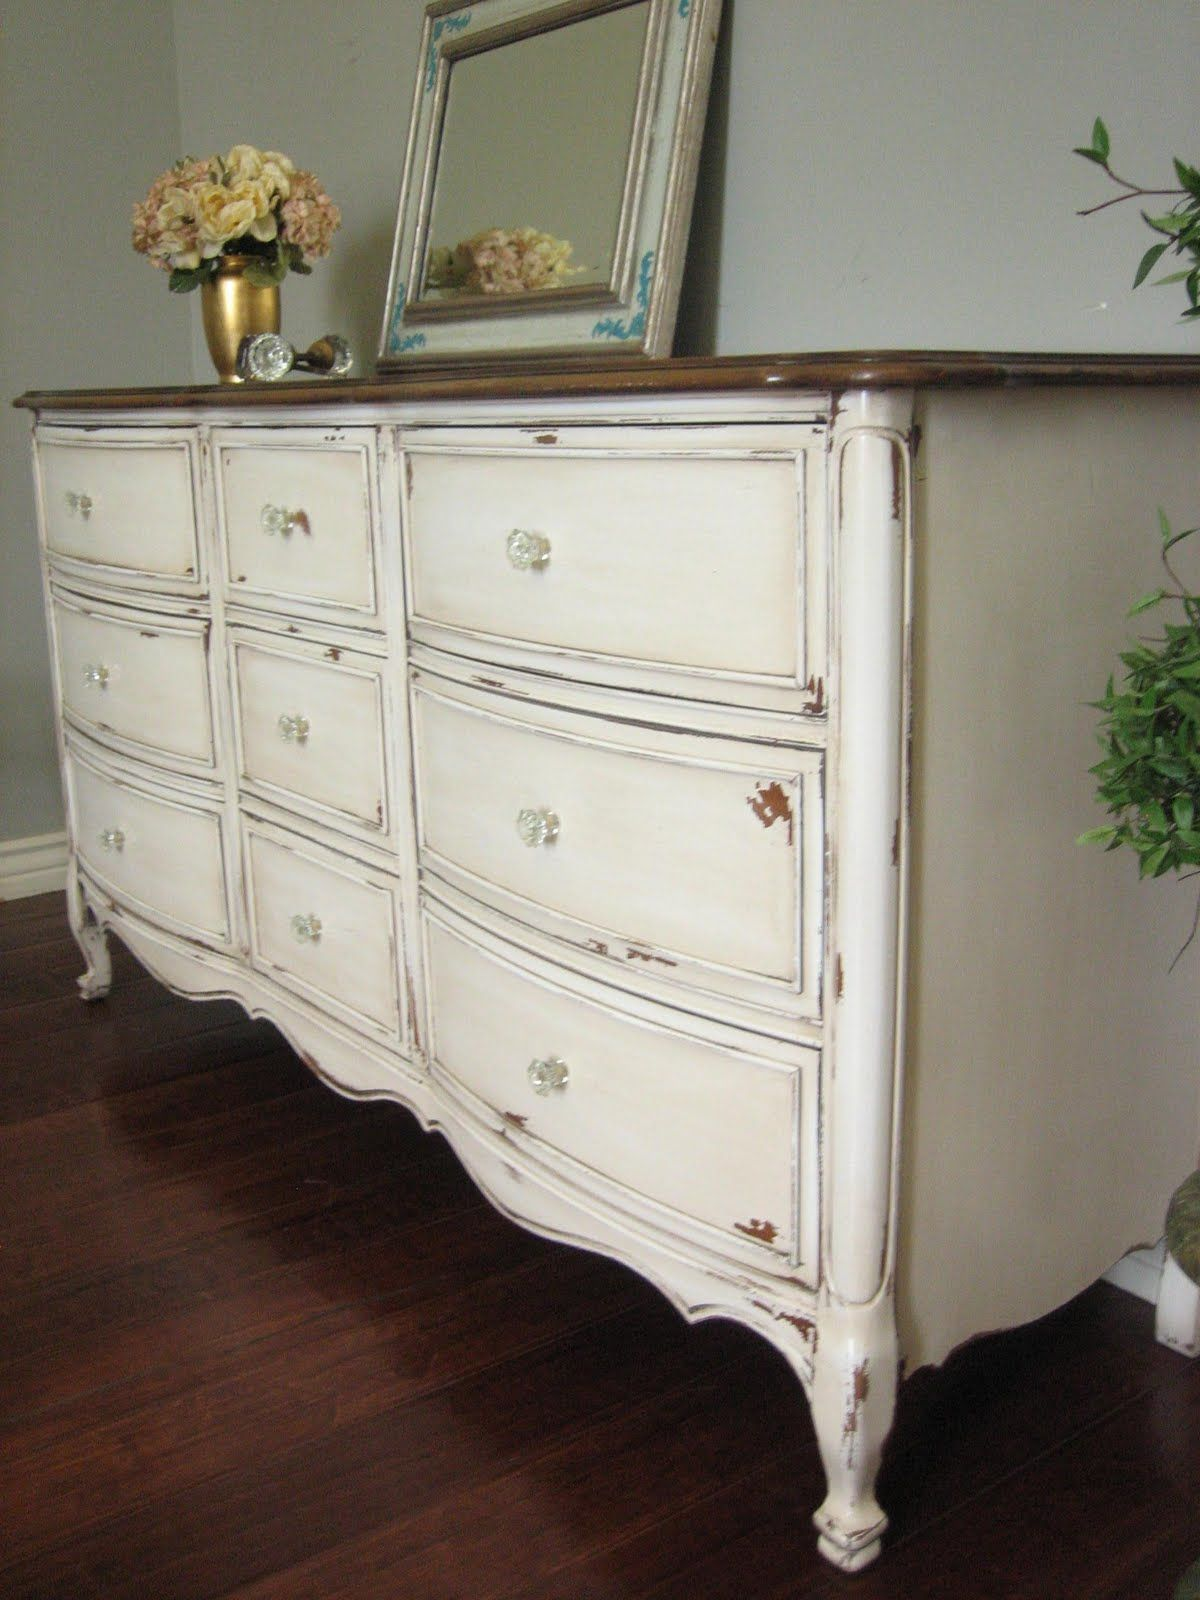 Painting furniture ideas distressed - Country